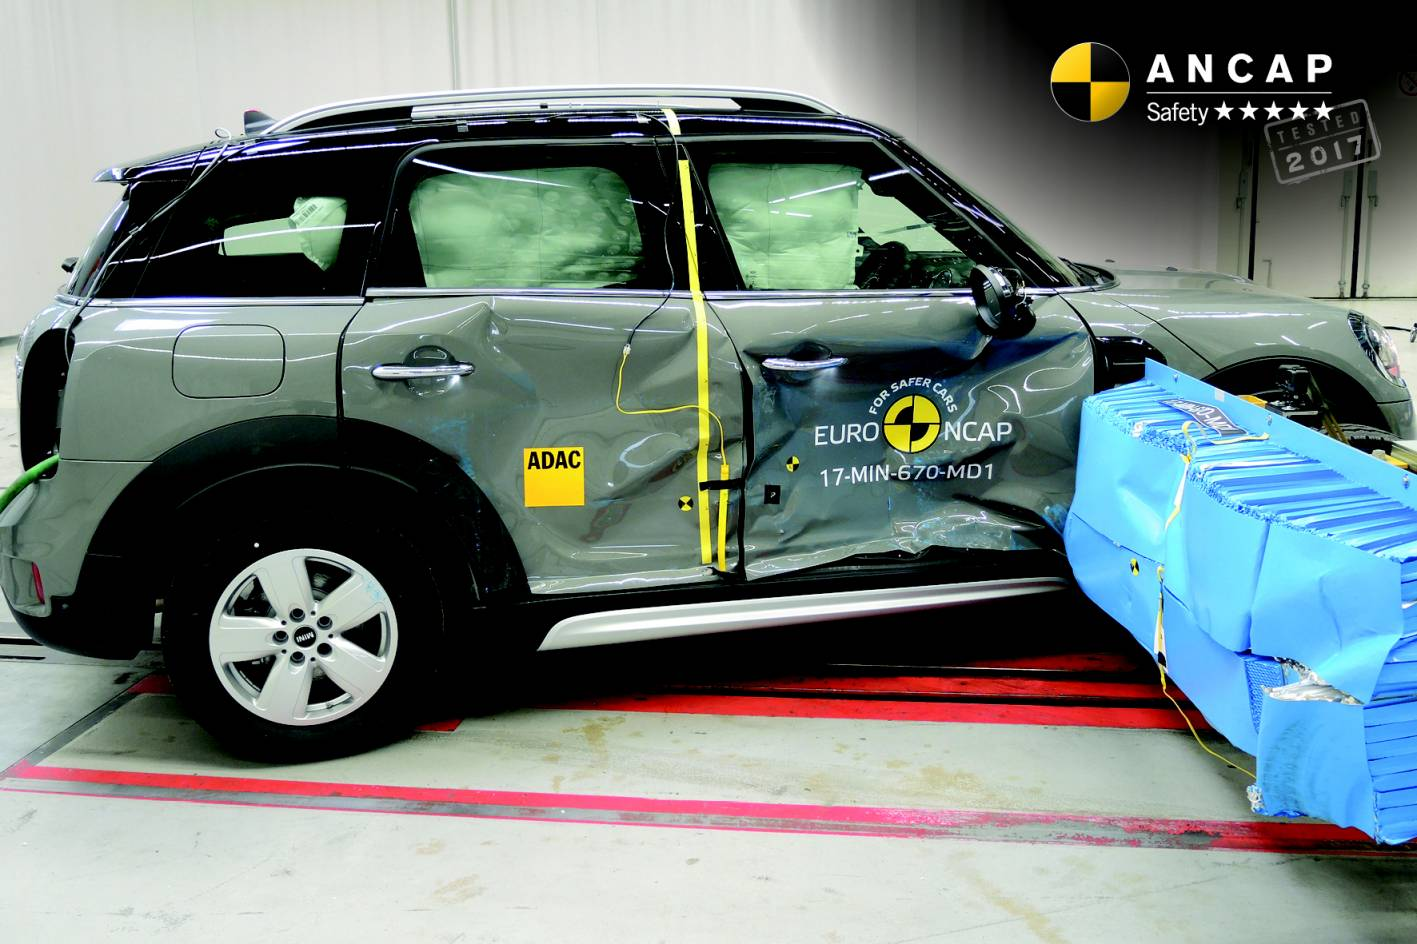 5 Star Safety For Audi Q2, Q5, Mini Countryman, Skoda Kodiaq